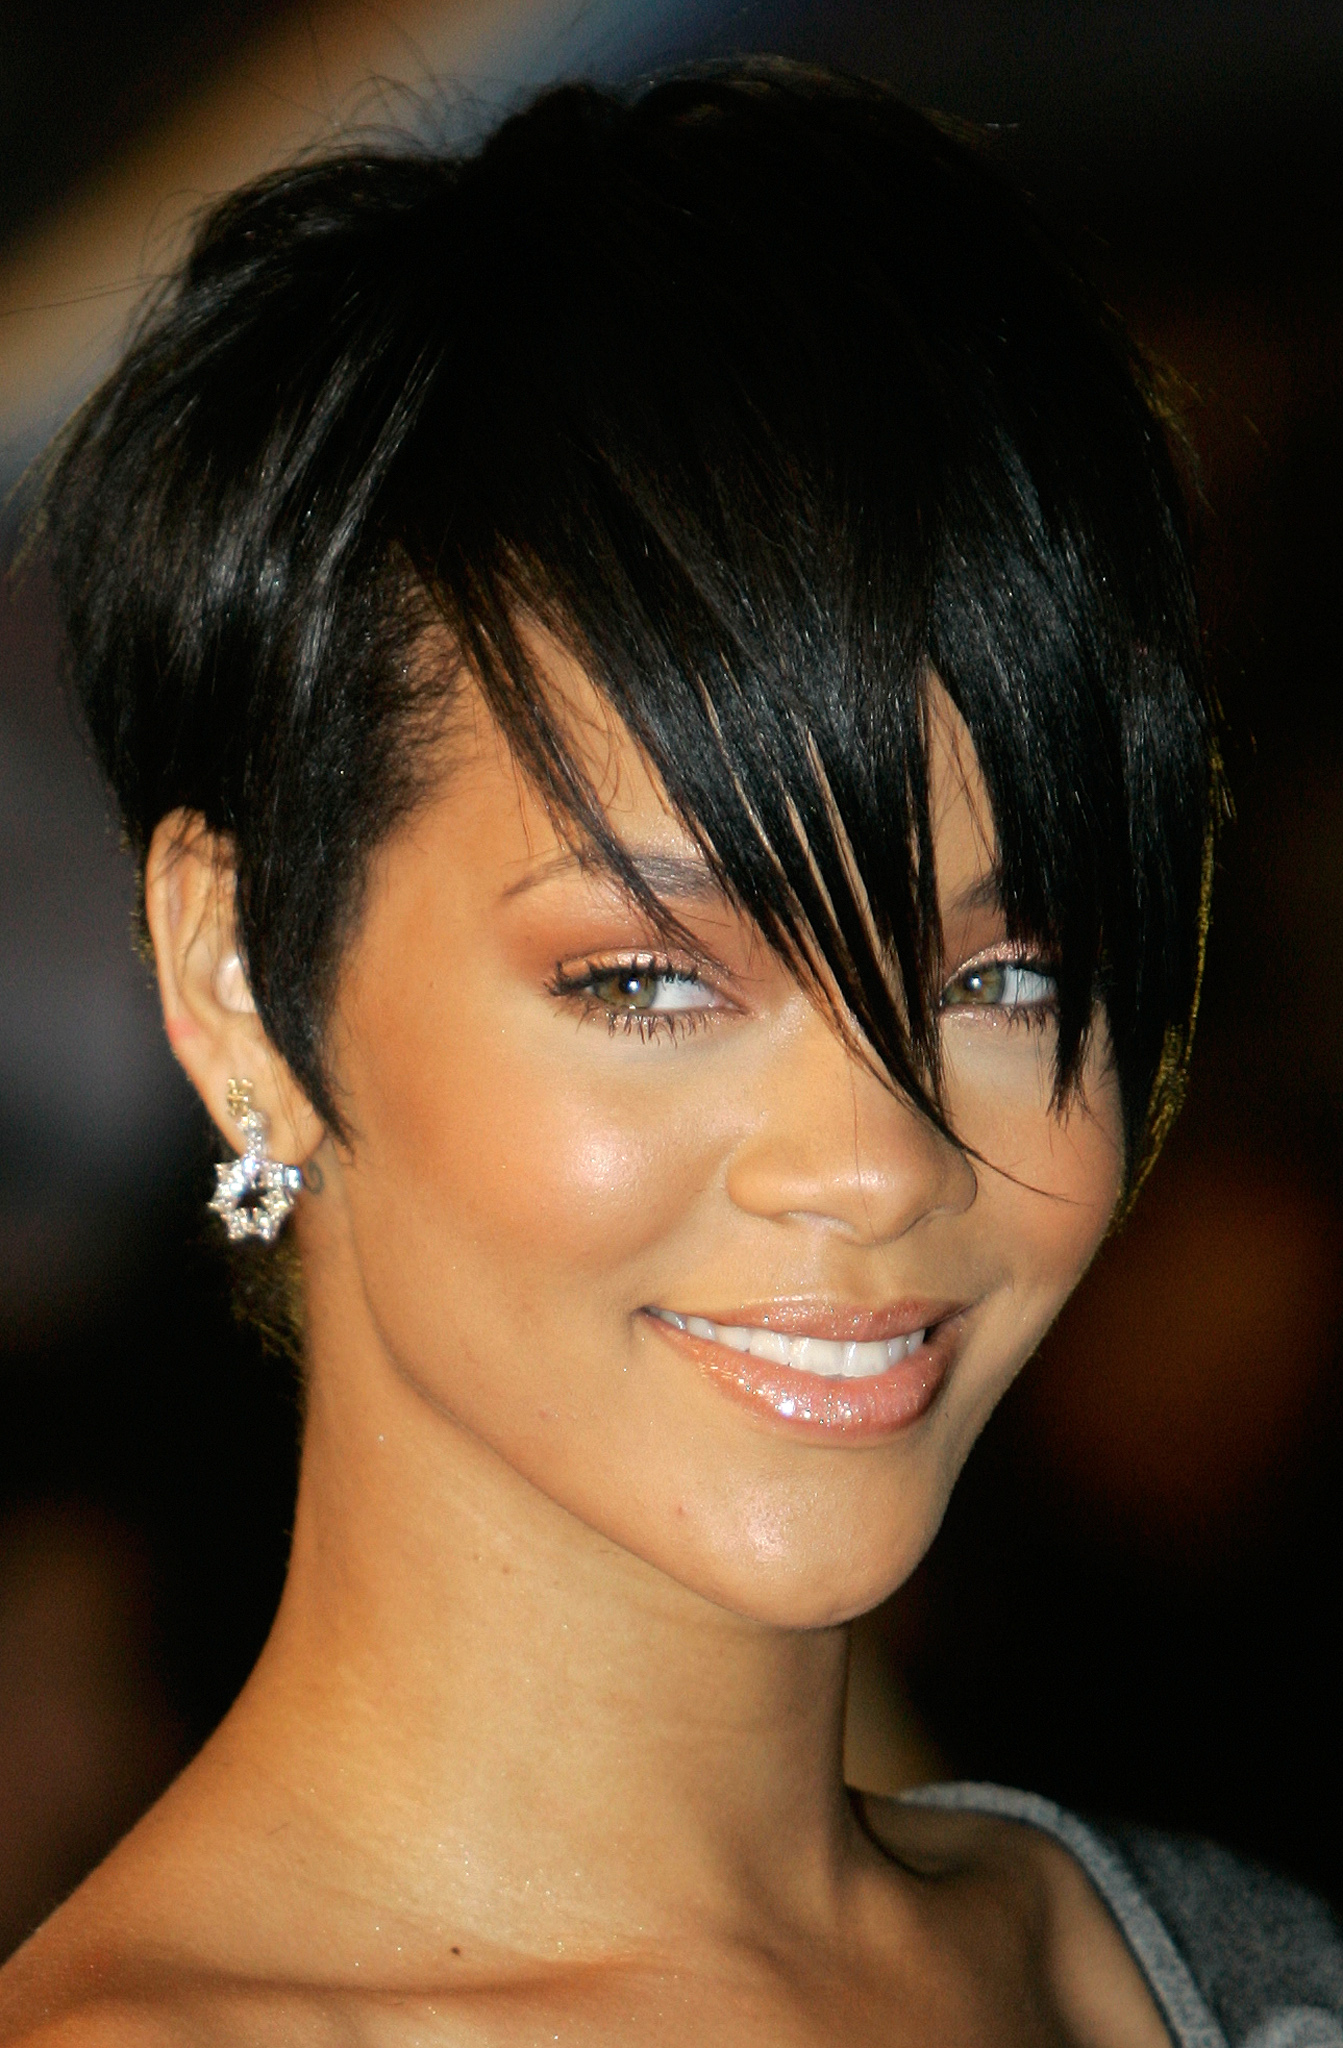 rihanna hair style rihanna photo 864 of 7720 pics wallpaper photo 131757 8903